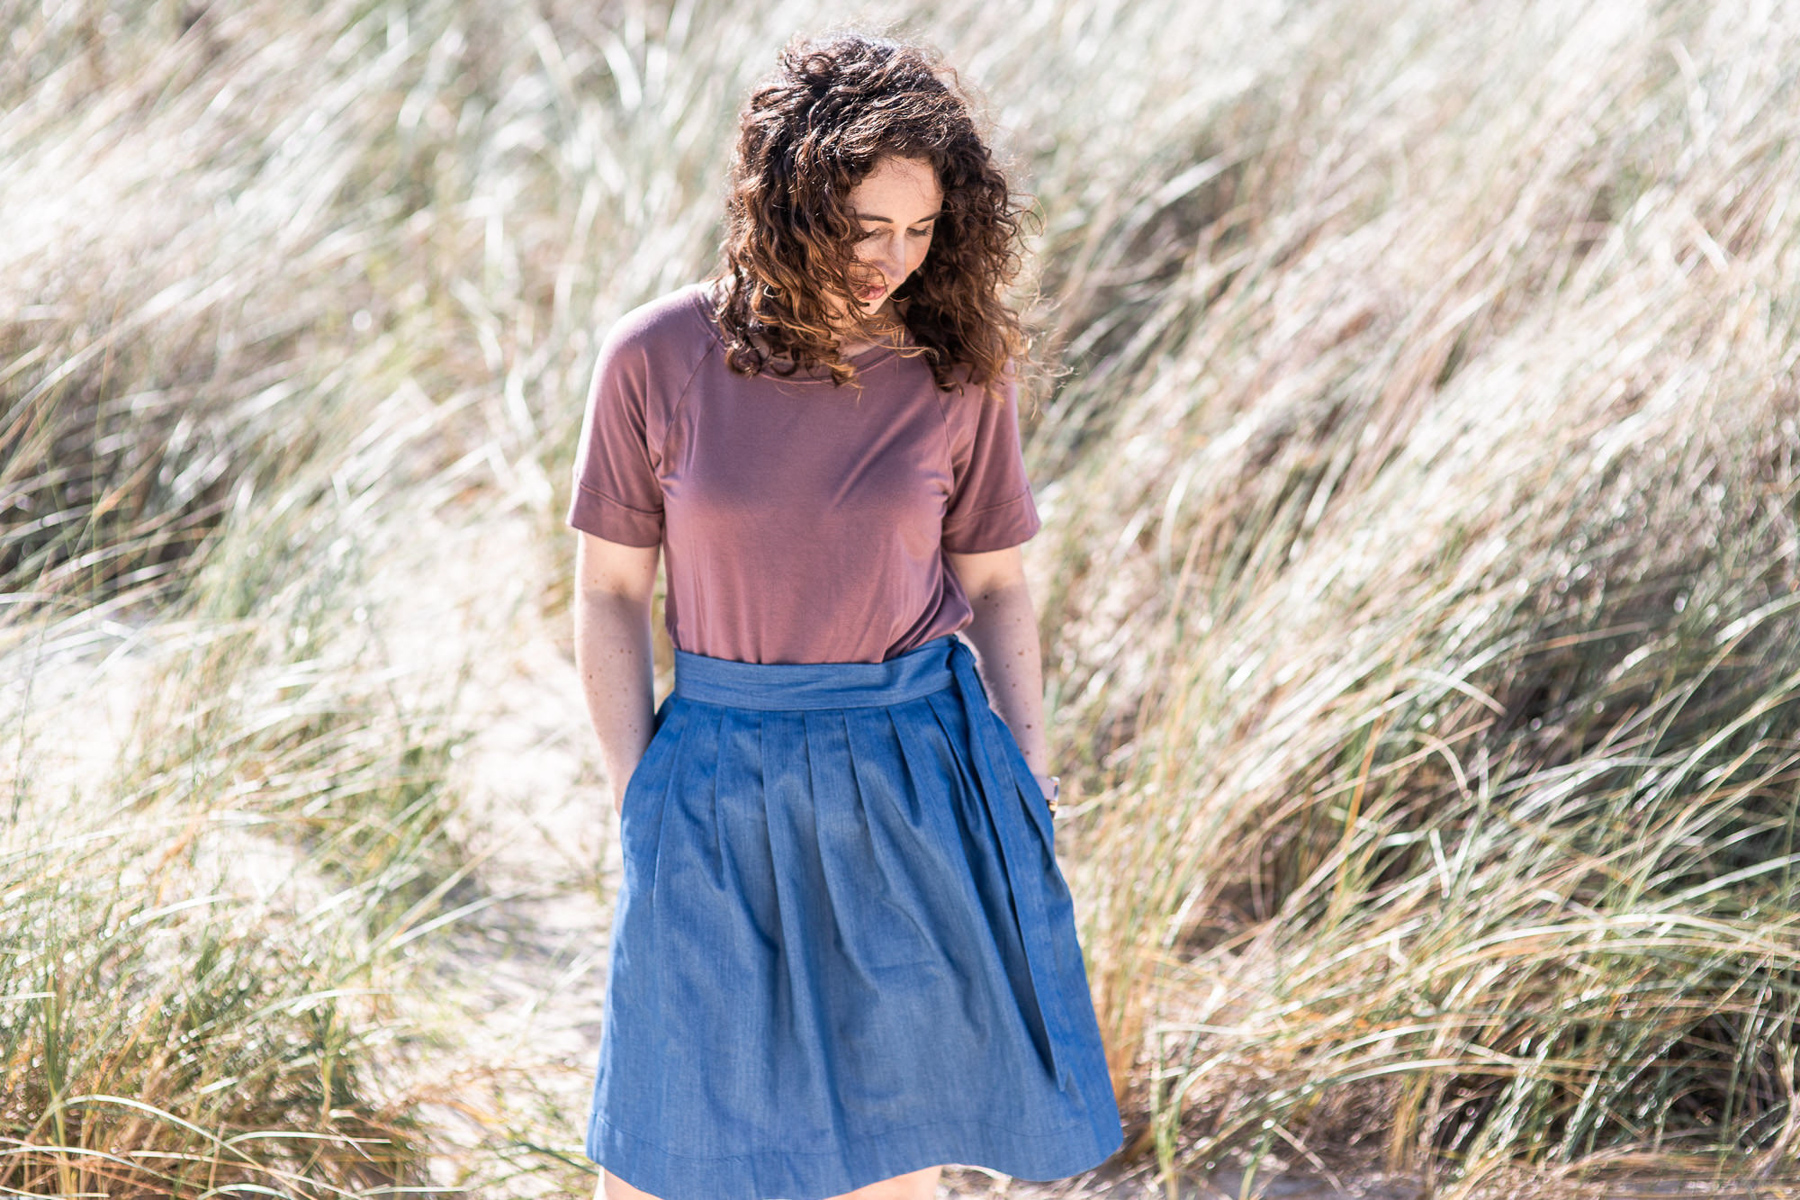 Megan Nielsen pleated Wattle skirt in chambray + pink River knit top